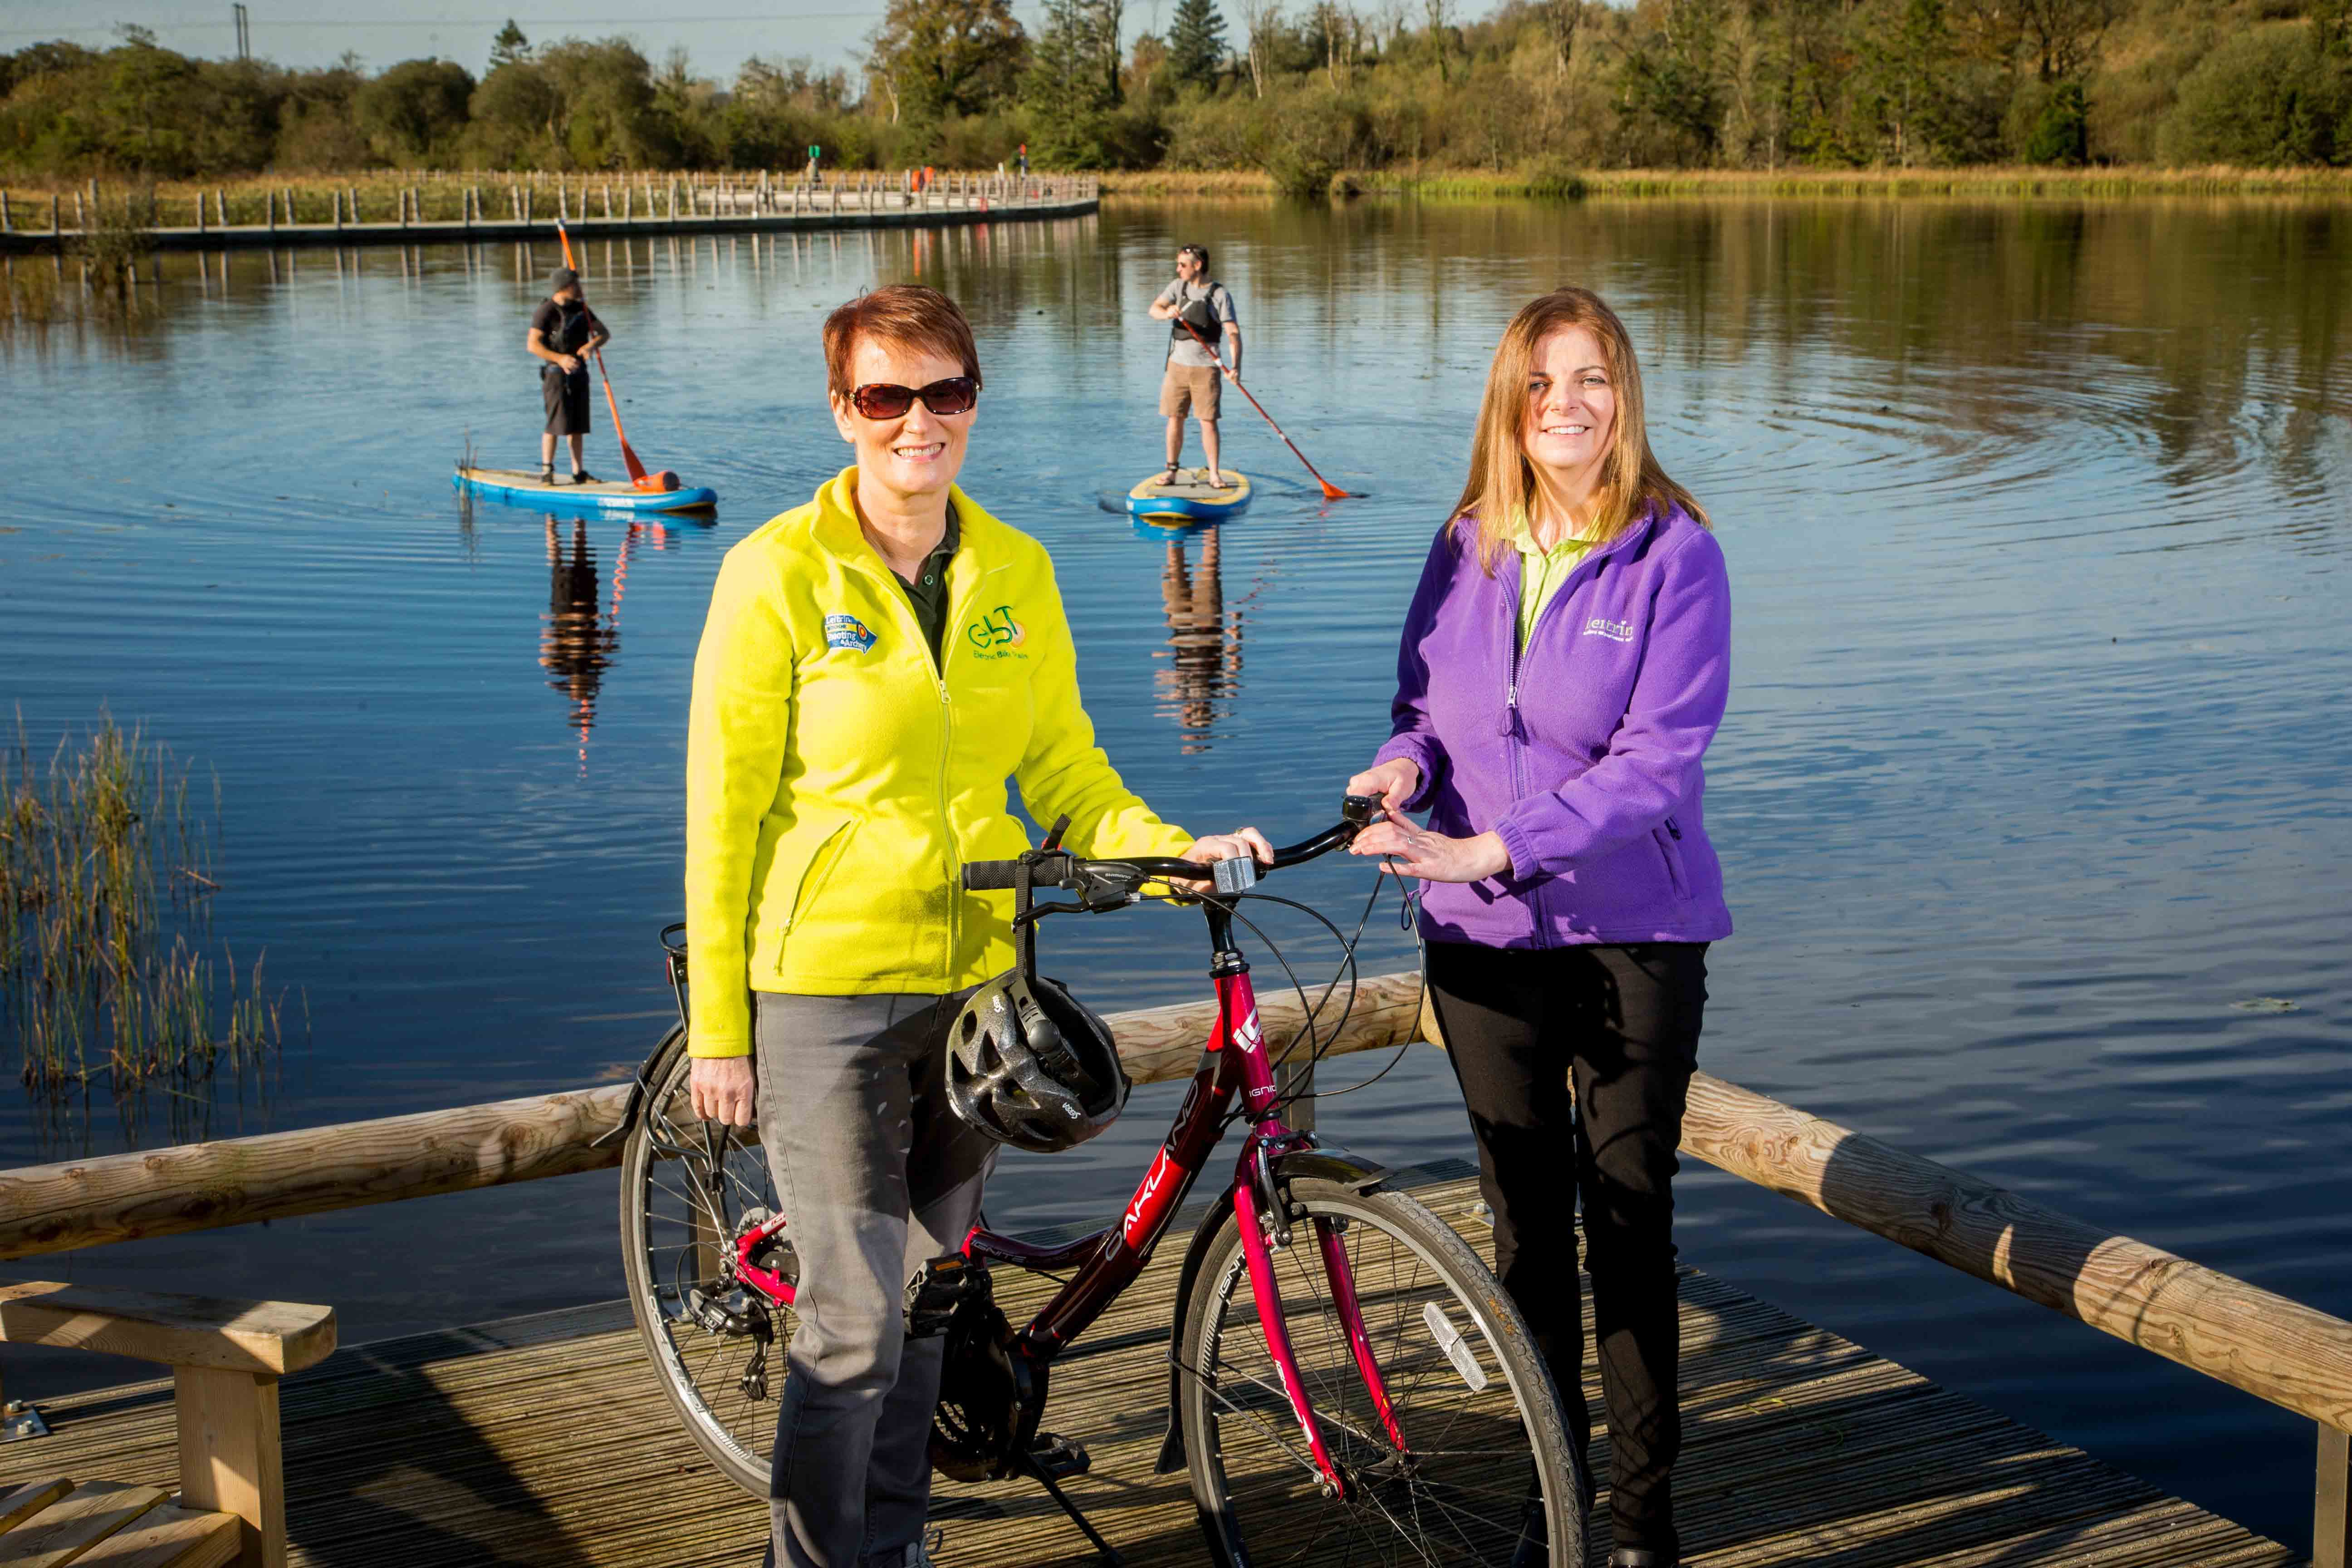 LIFE IN THE SLOW LANE: Eileen Gibbons from Leitrim Cycle Trails (left) and Leitrim Tourism Officer Sinead McDermott (right), pictured at Acres Lake in Drumshanbo, are helping to put County Leitrim on the map as Ireland's home of Slow Adventure, a new concept in tourism that encourages people to slow down and immerse themselves in their experience. With its rural locations and unspoiled landscapes, Leitrim is leading the way in Slow Adventure Tourism, which is all about replacing those adrenalin-pumping, quick fix adventure hits with a slower more immersive experience in which visitors can learn more about the local environment, food and wildlife whilst taking part in an activity. Over the past two years, Leitrim Tourism has been working with local providers, as part of a European-wide research programme, to develop an array of packages and experiences to meet the criteria and principles of the Slow Adventure Trademark and appeal to visitors who prefer life in the slow lane. More details can be found at http://slowadventure.ie/.